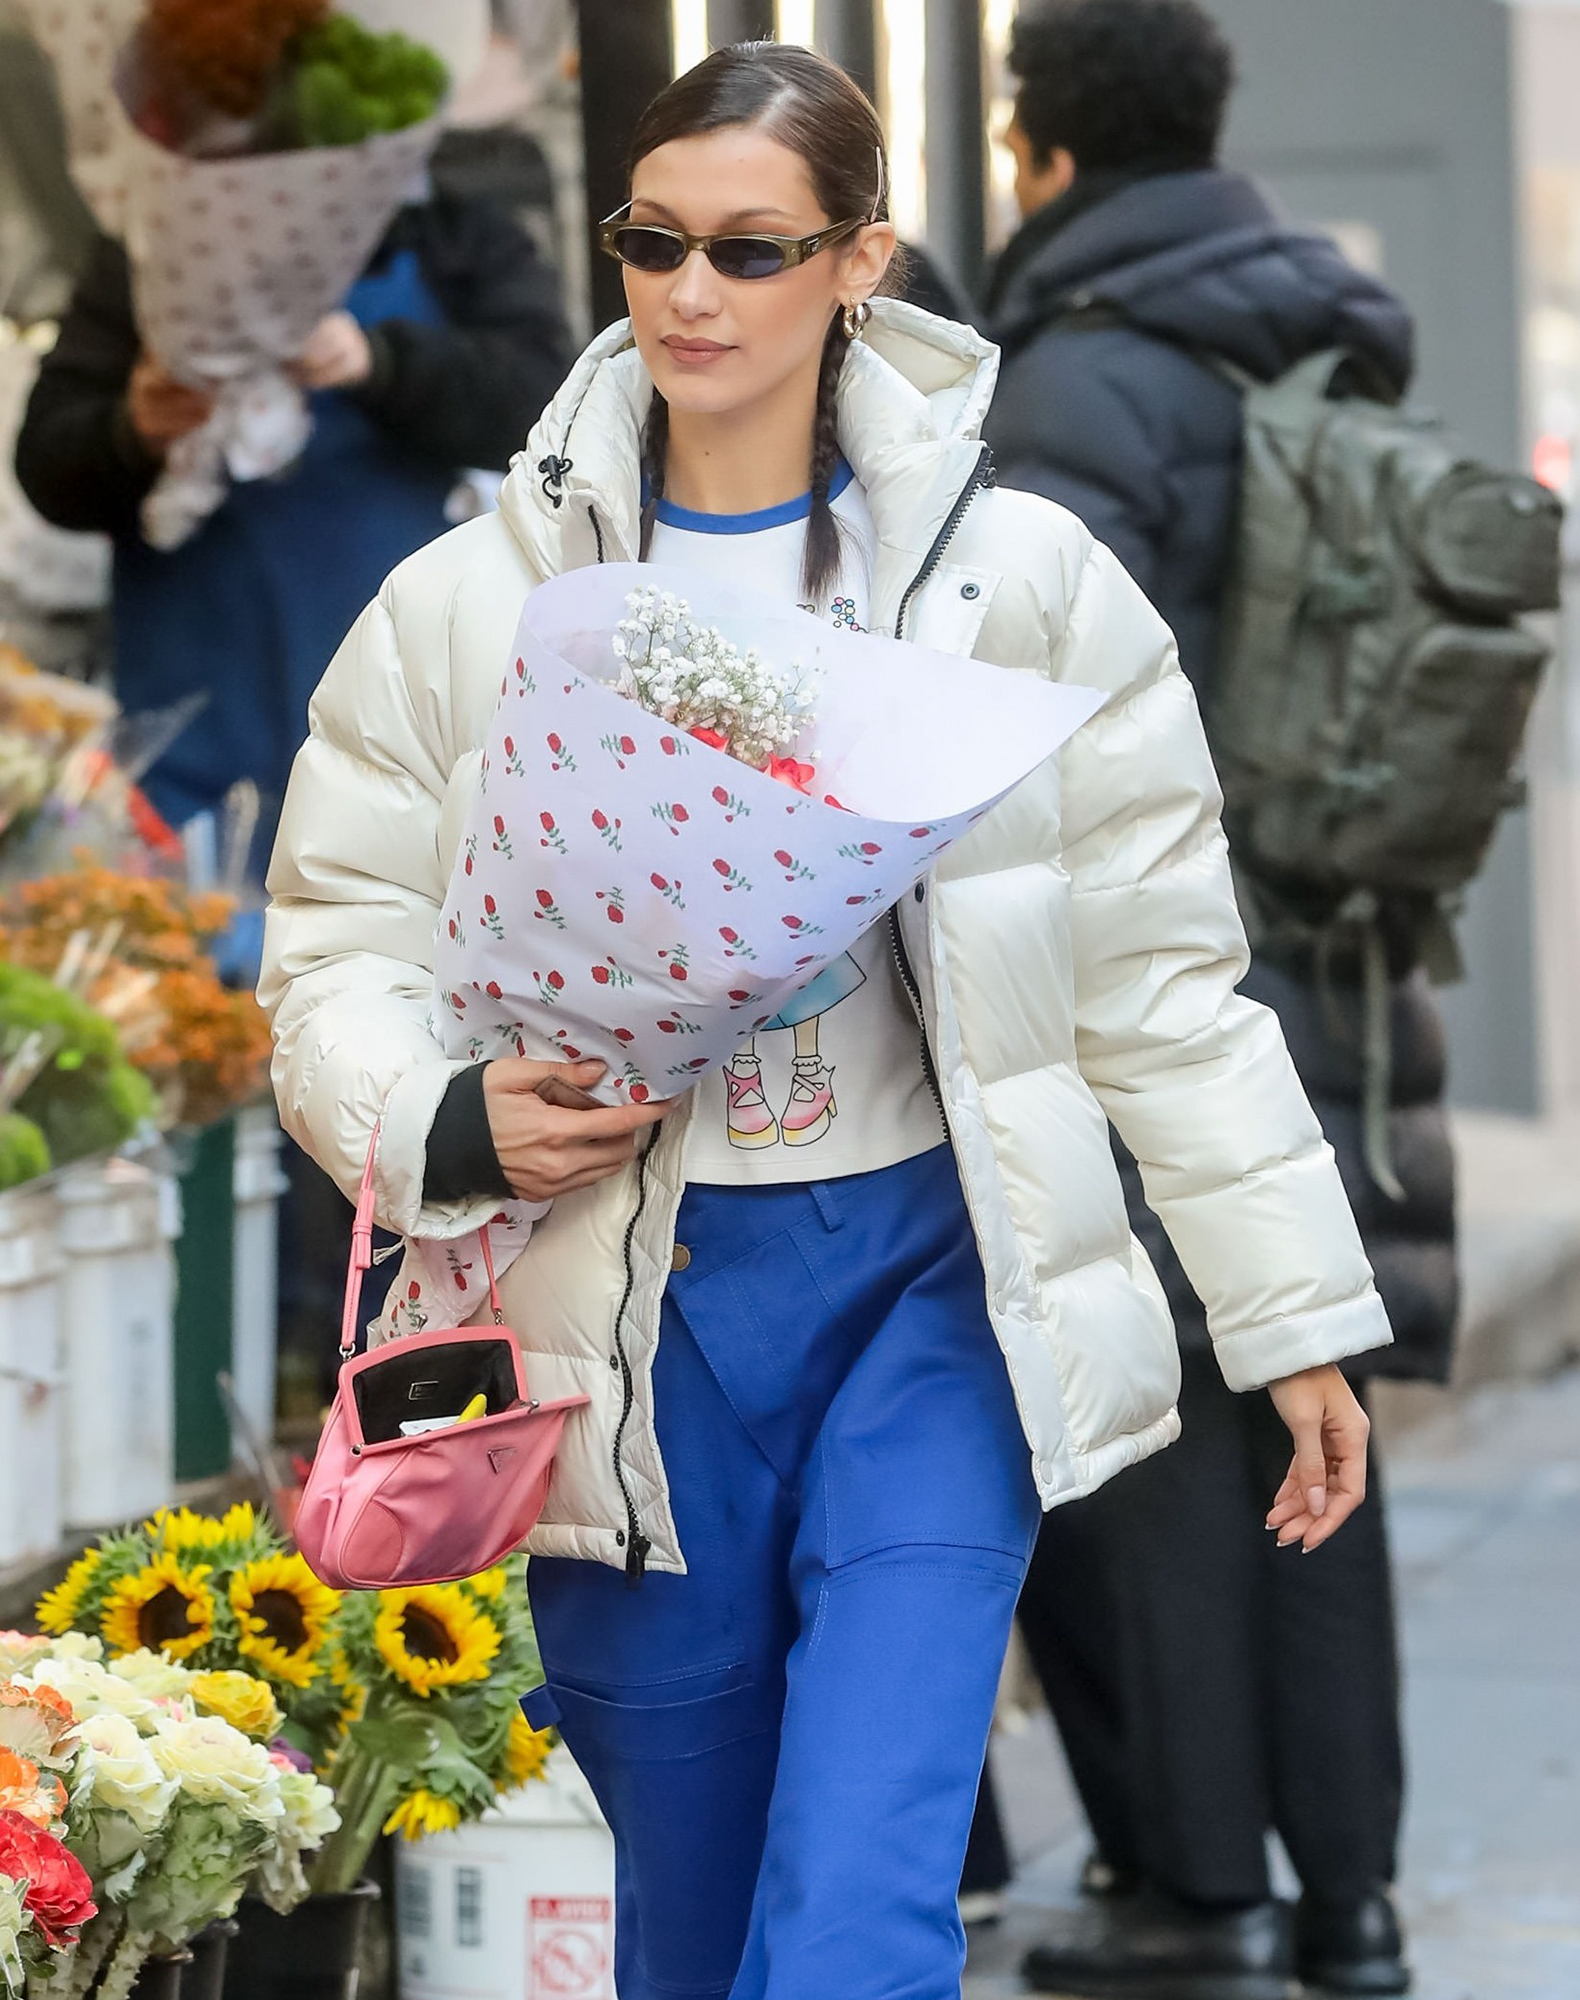 Bella Hadid Shops For Flowers In New York